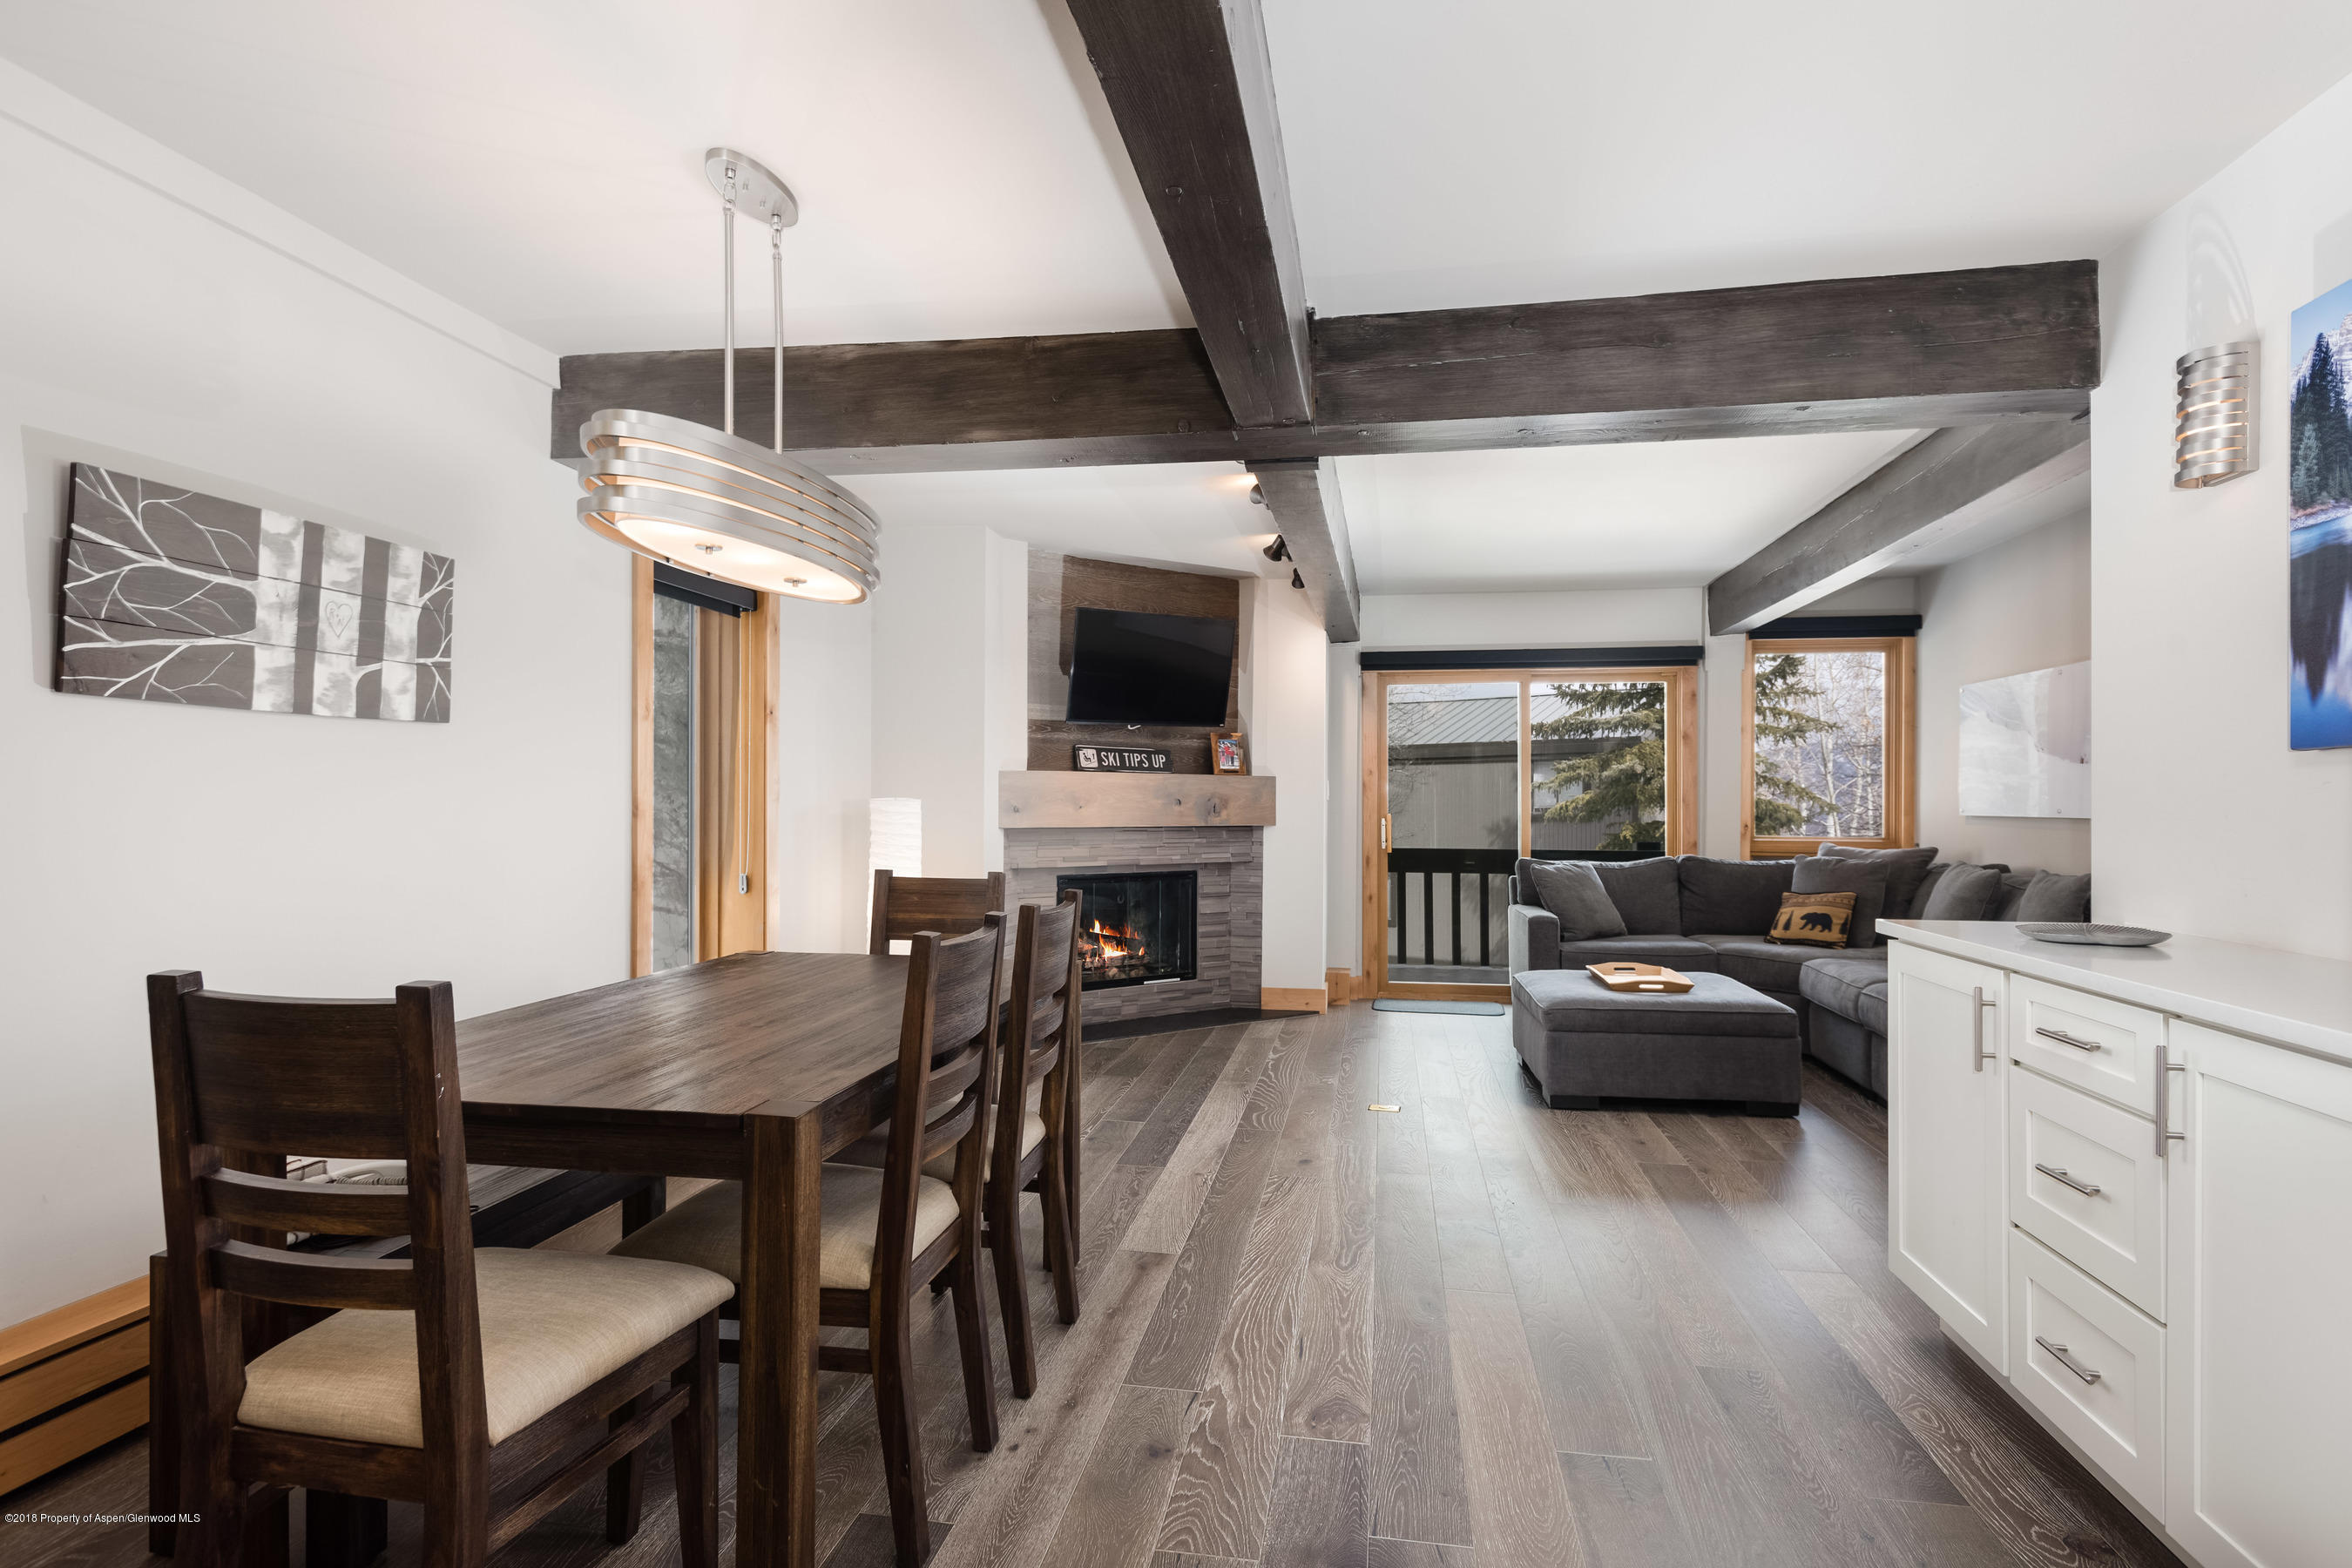 70 Gallun Lane, 101A - Snowmass Village, Colorado